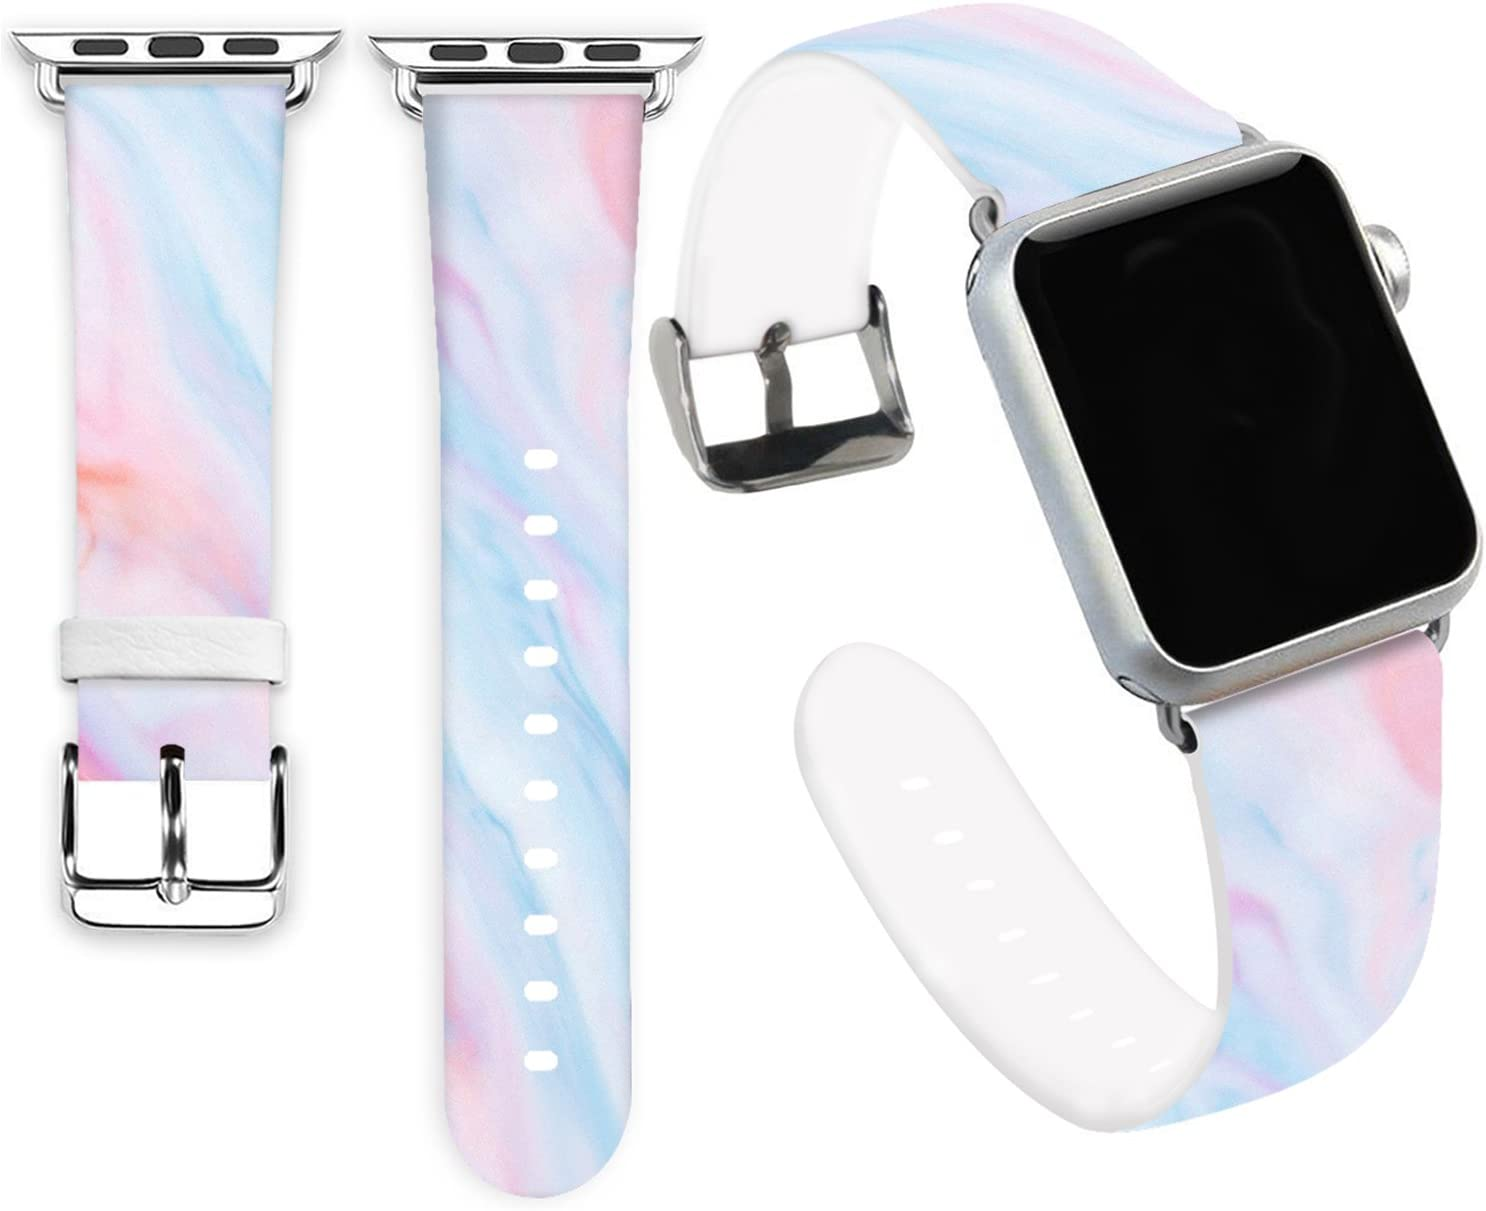 Iwatch 2 Band 38mm,Jolook Soft Leather Sport Style Replacement iWatch Strap for Apple Watch 38mm 40mm Series 6/5/4/3/2/1 - Unique Rainbow